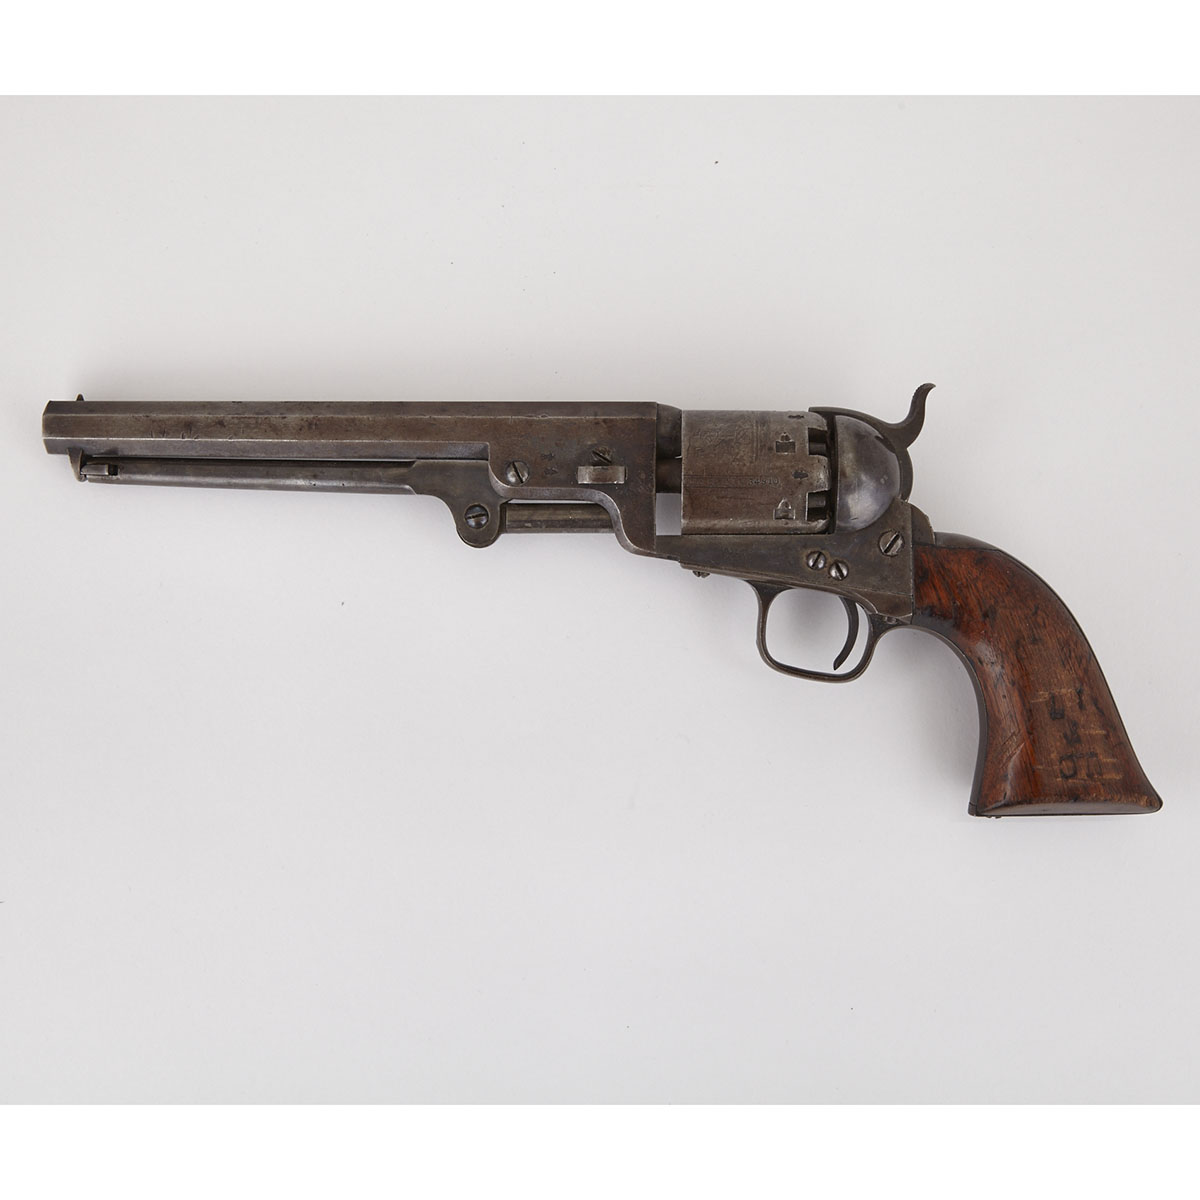 Canadian Militia London Colt Model 1851 Navy Percussion Revolver, 1853